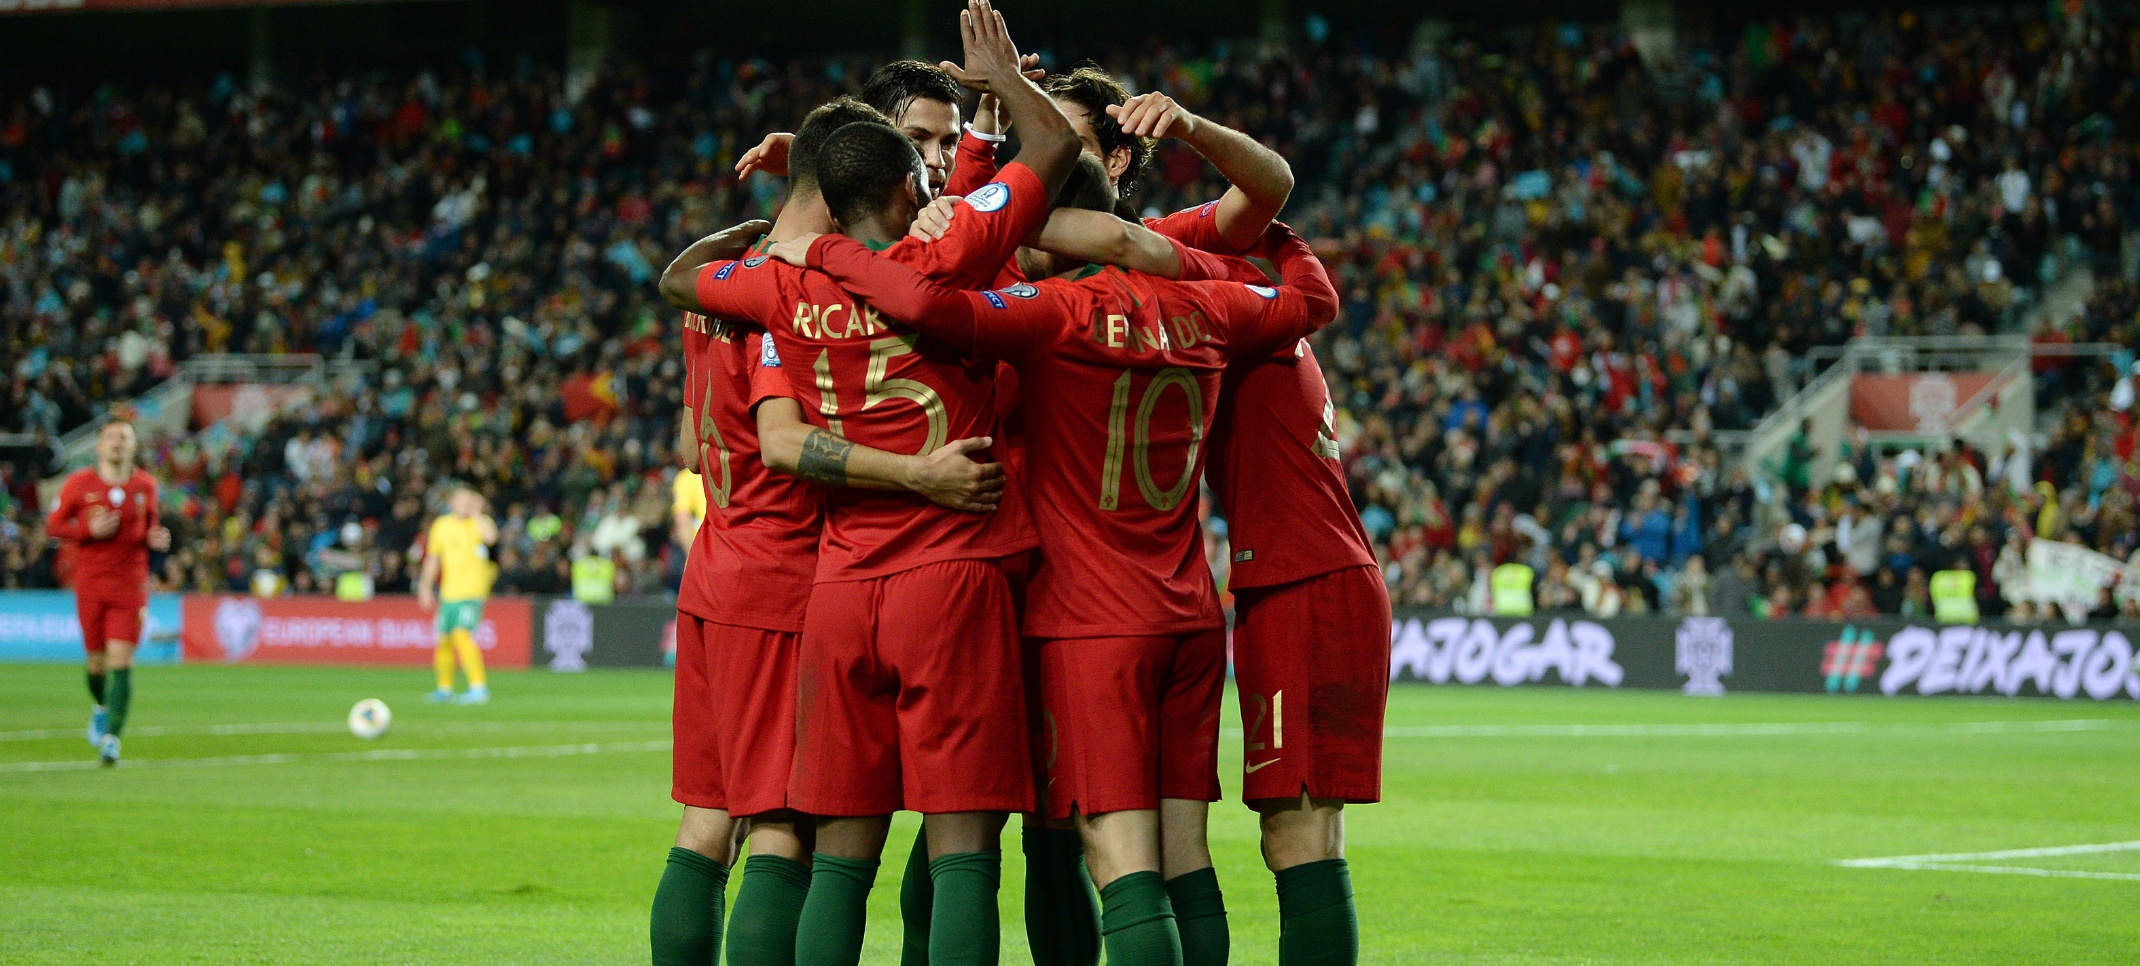 Portugal v Lithuania - UEFA Euro 2020 Qualifier